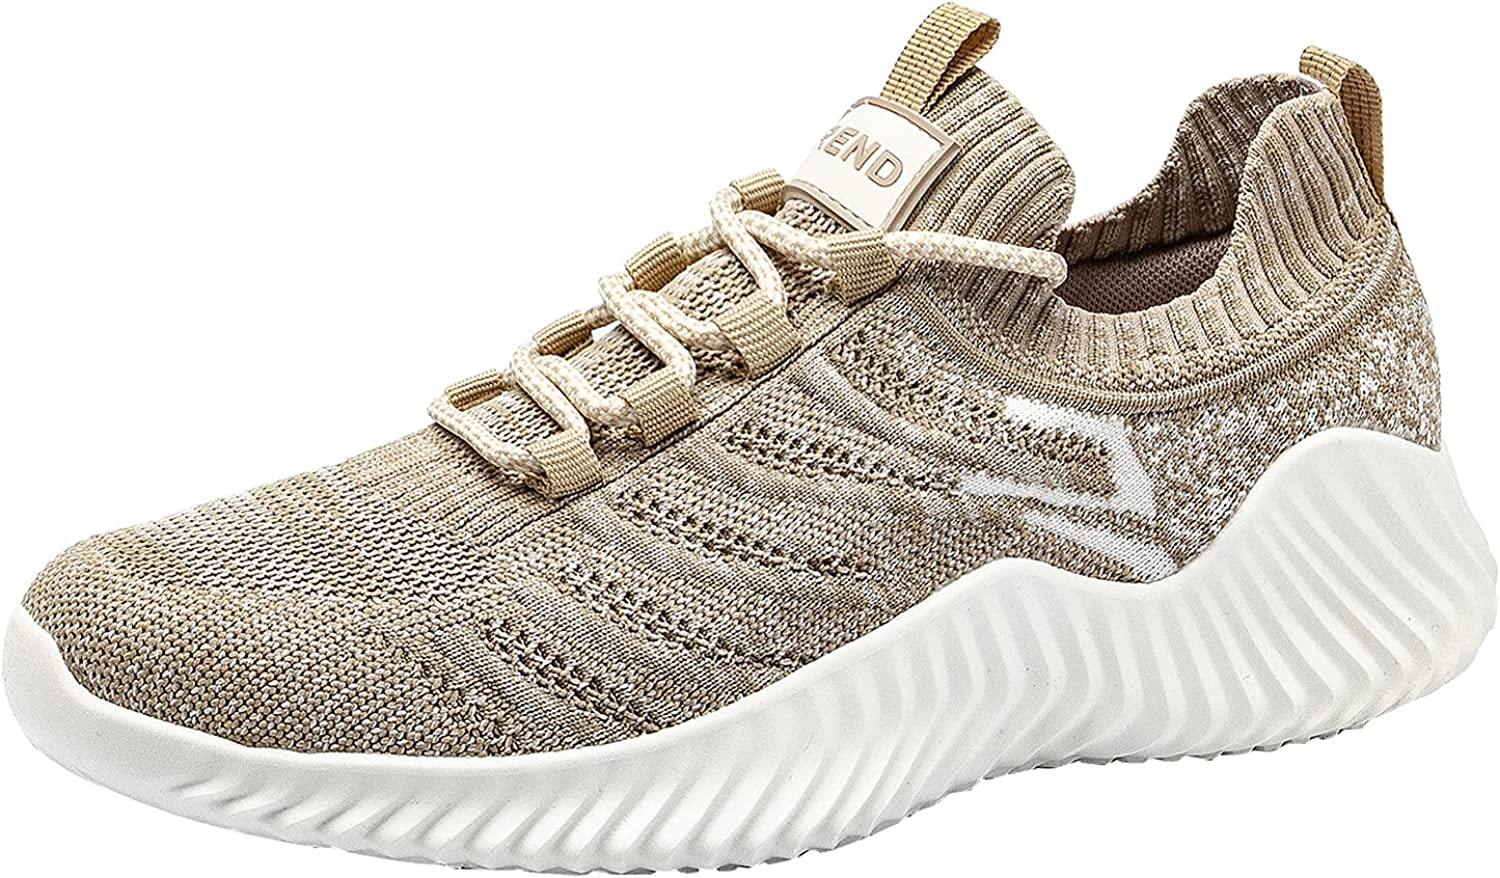 Adeliber Unisex Casual Sports Shoes Fashion Mesh Breathable Training Sneakers Outdoor No-Slip Walking Shoes for Women Comfortable Air Cushion Lightweiht Lace Up Running Shoes for Men